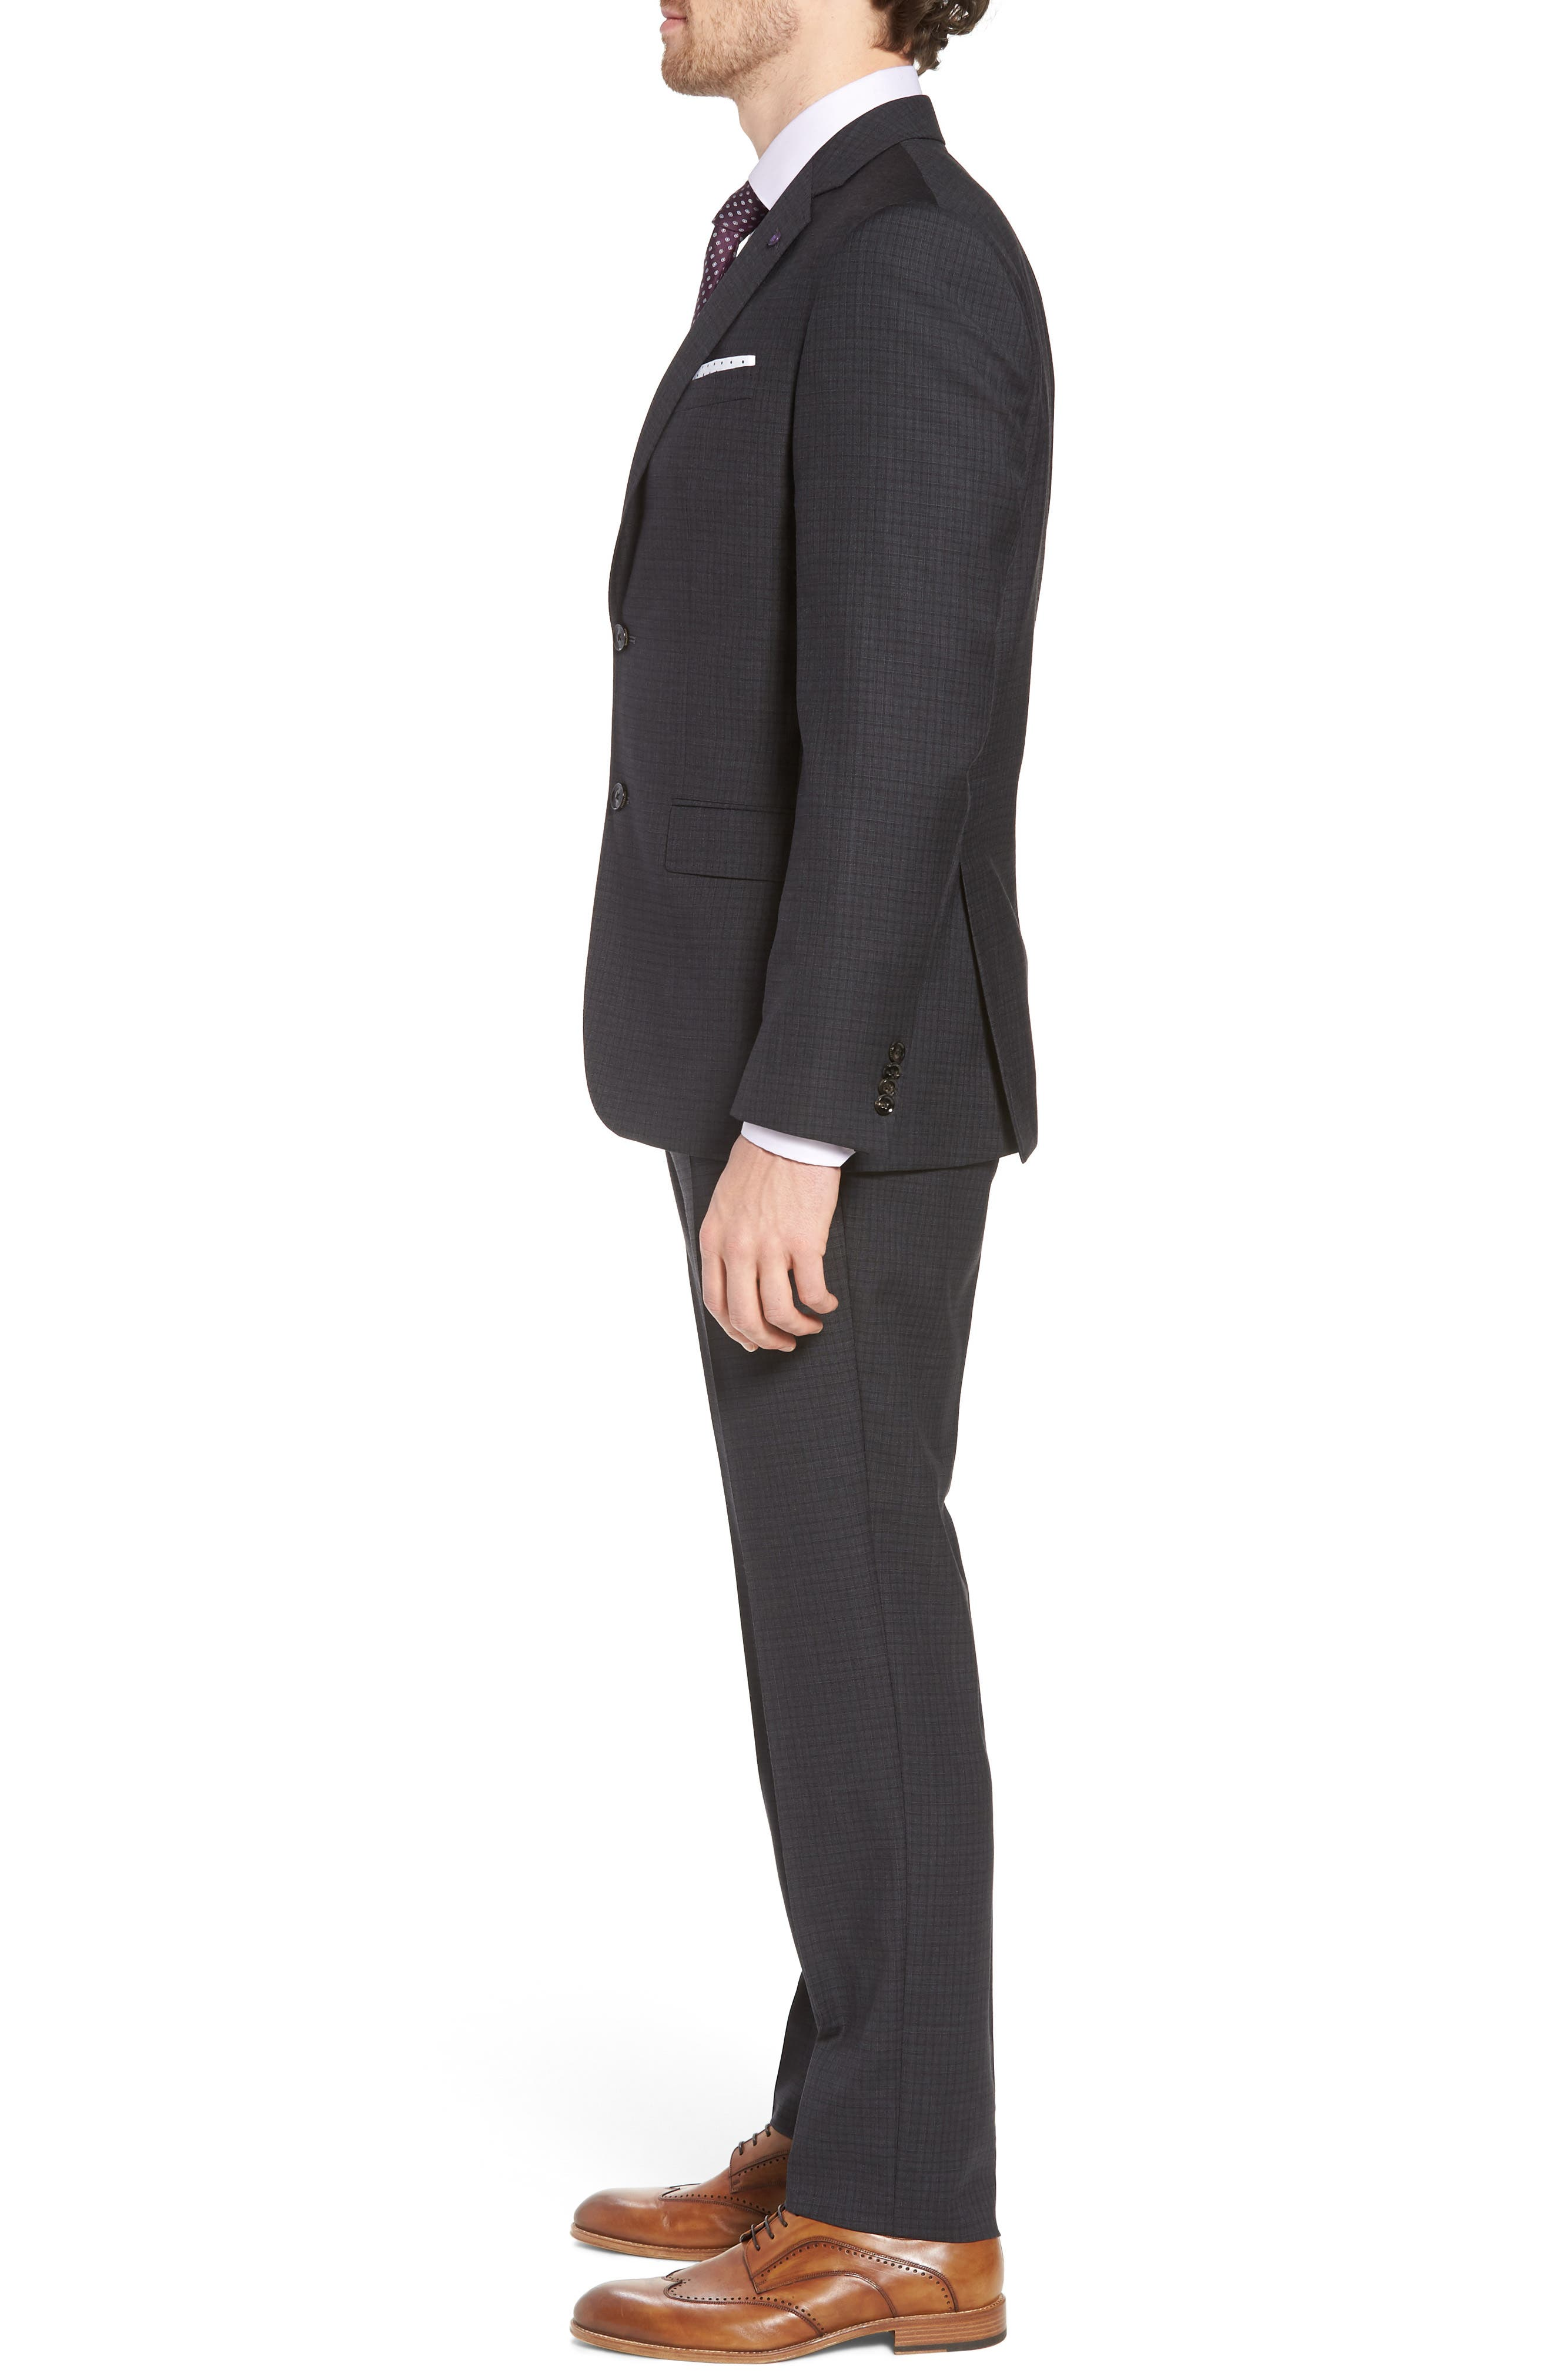 Jay Trim Fit Check Wool Suit,                             Alternate thumbnail 3, color,                             Charcoal